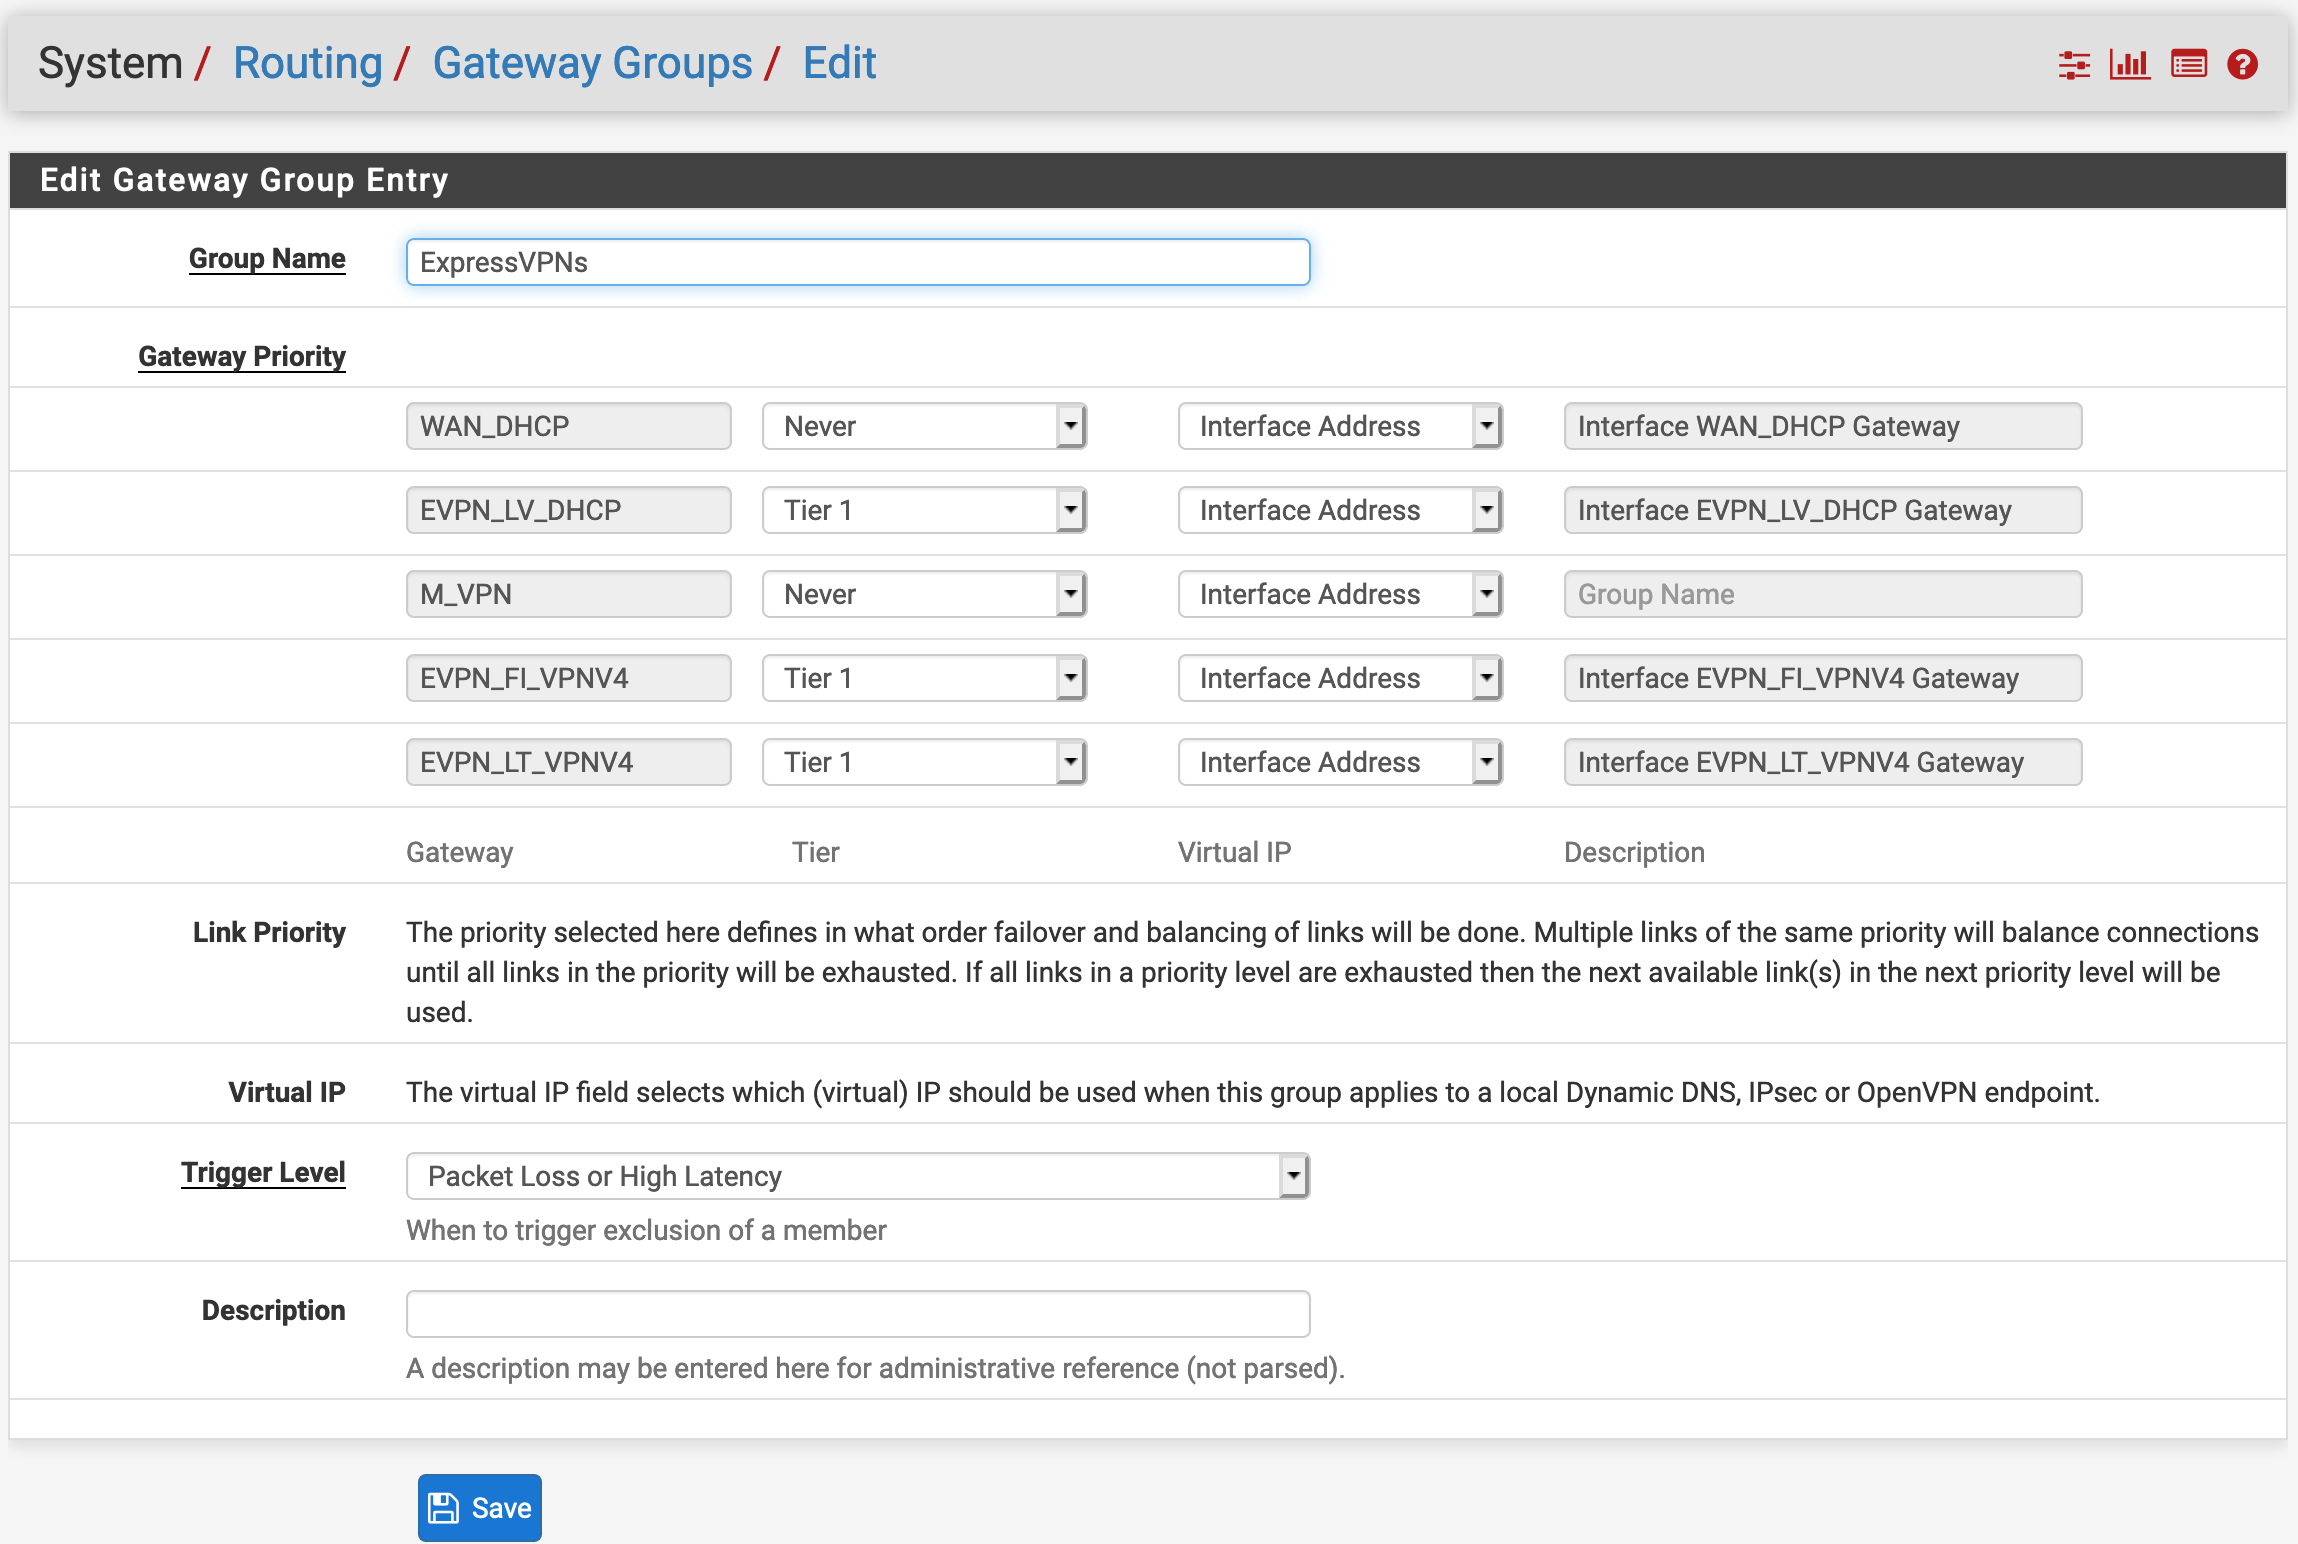 System - Routing - Gateway Groups